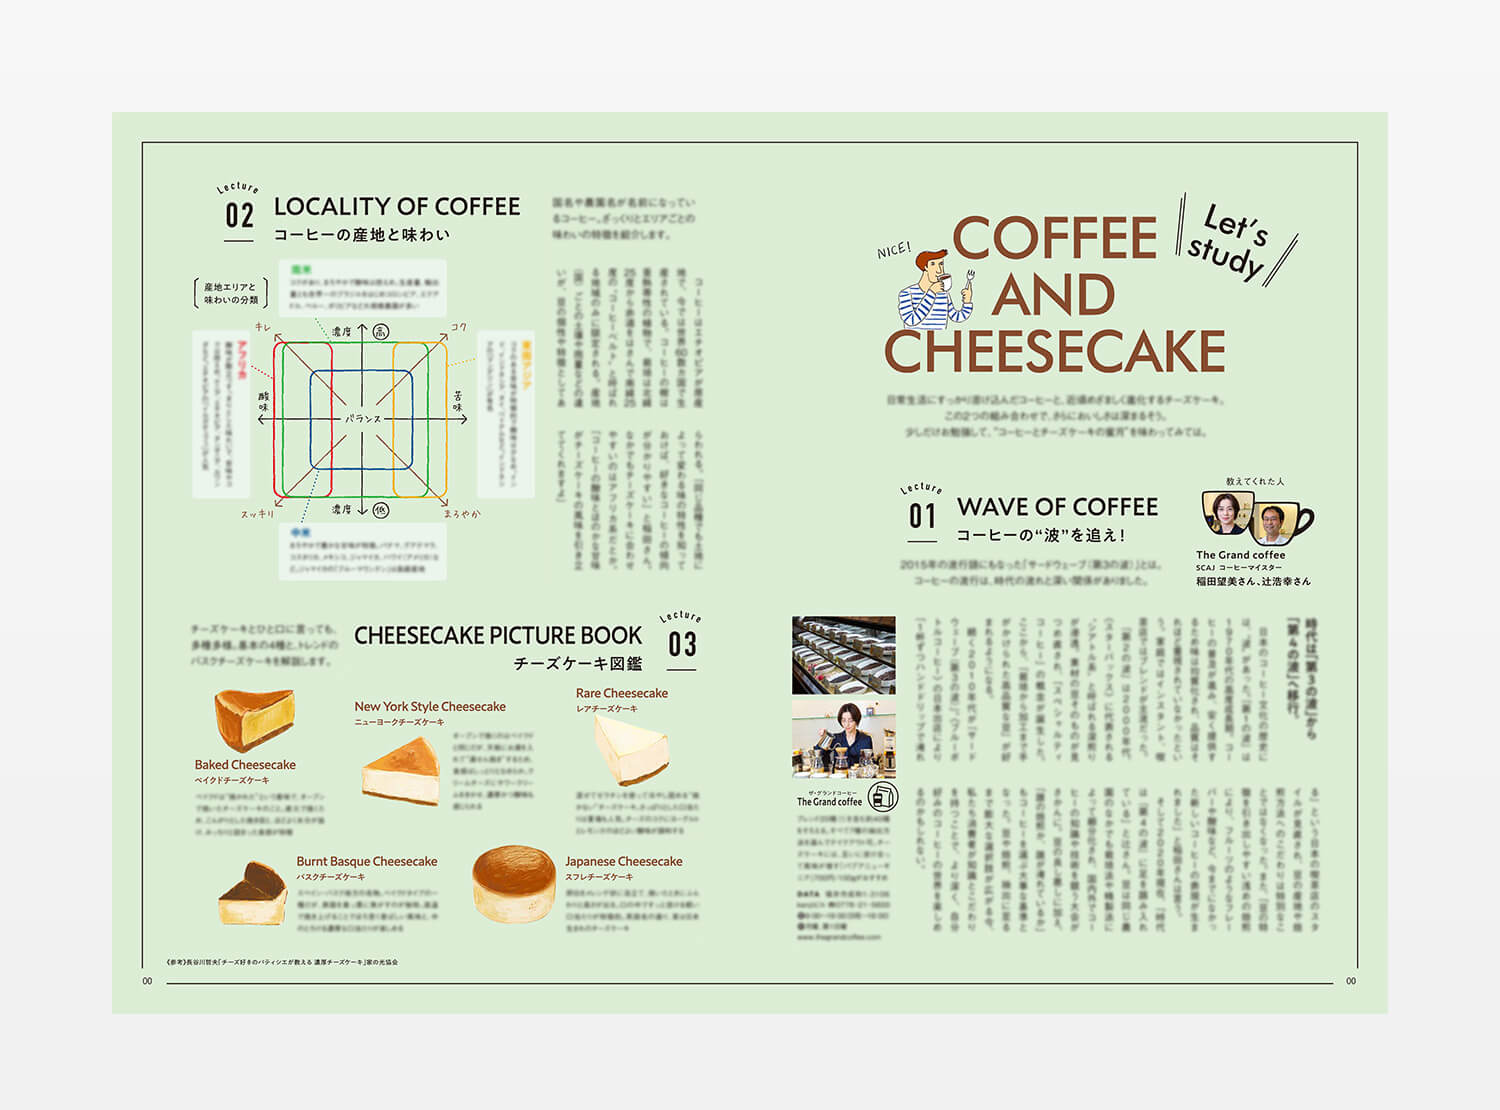 COFFEE & Cheesecake コーヒー&チーズケーキ イラスト